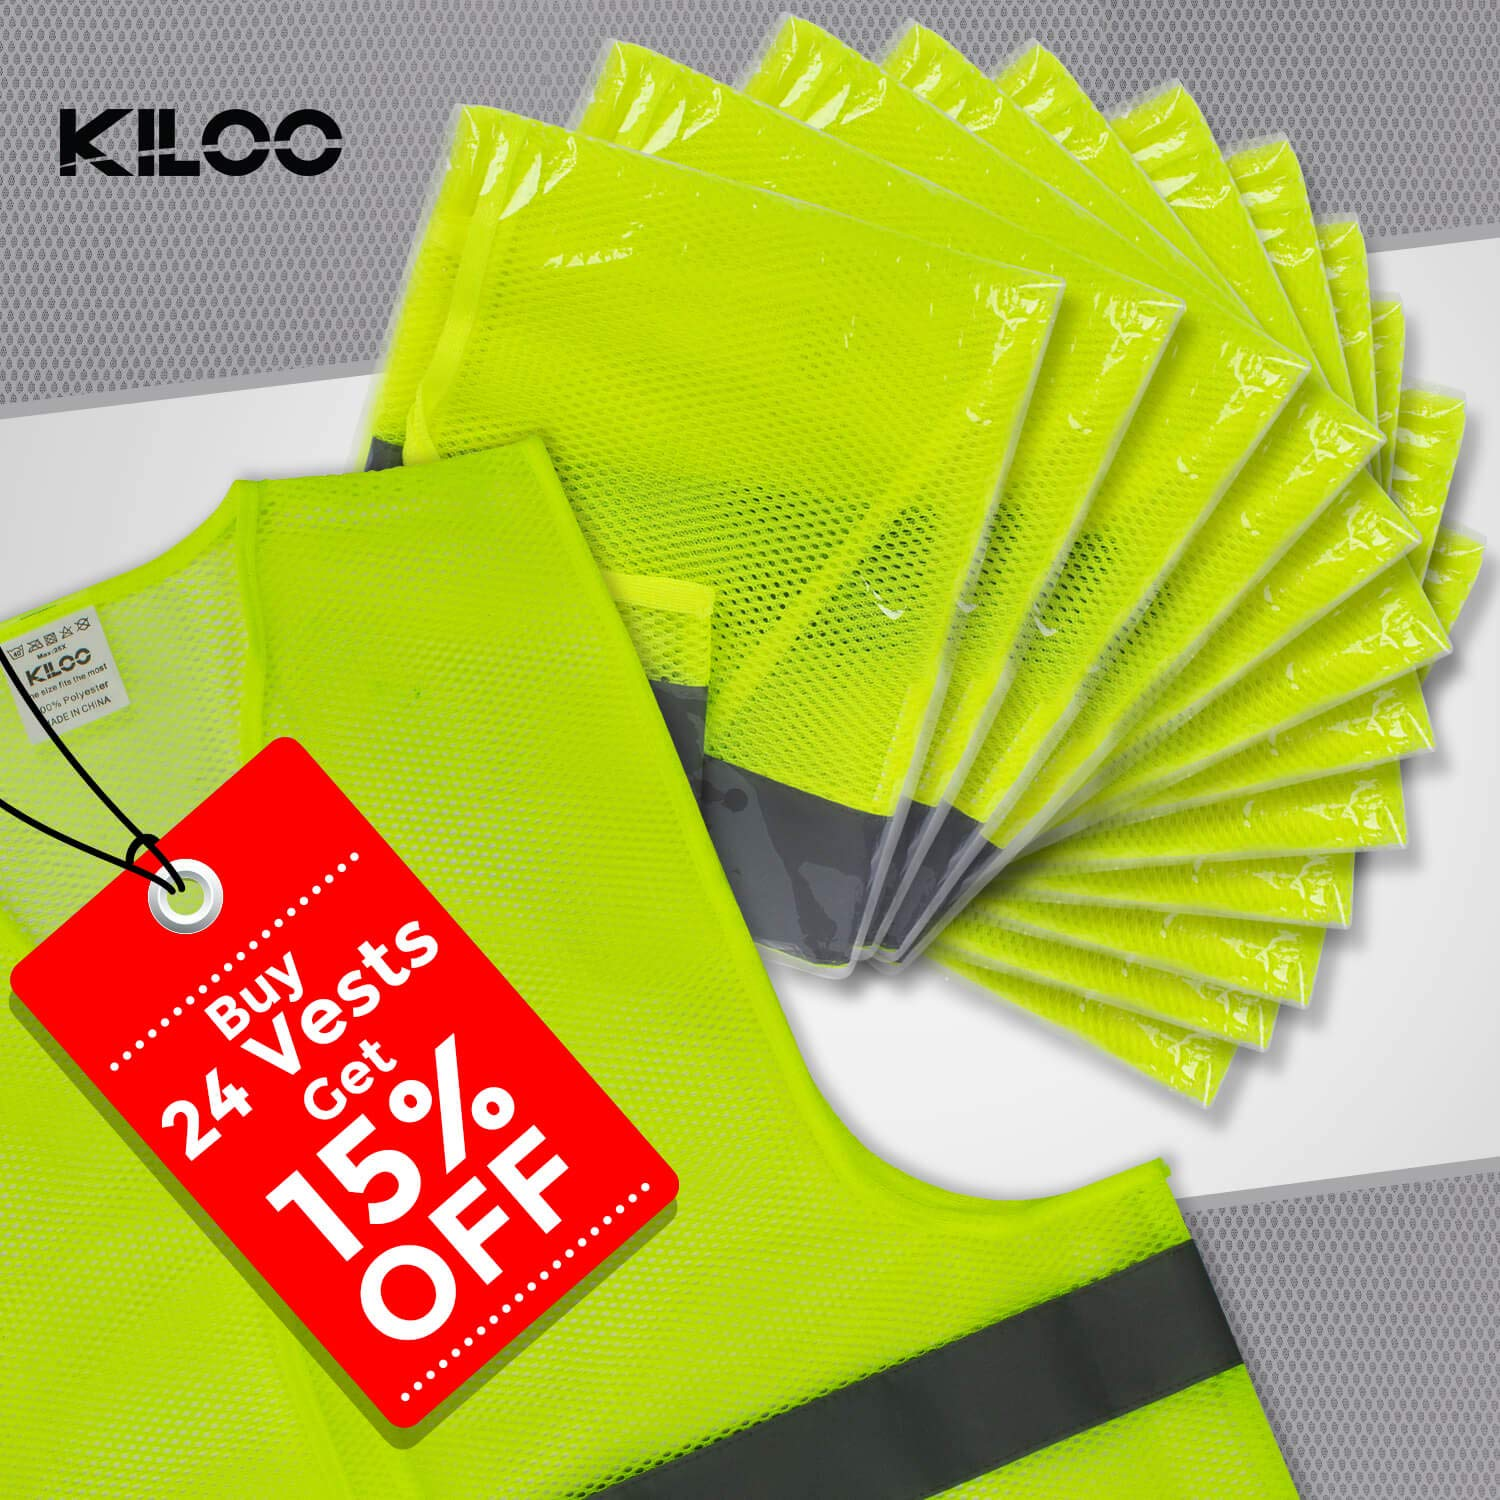 Reflective Safety Vests - Pack of 12 | High Visibility Neon Yellow Mesh | Fits Men and Women | For Construction and Surveyor Work, Security, Emergency, Event Volunteers, Traffic and Parking Workers by Kiloo (Image #9)